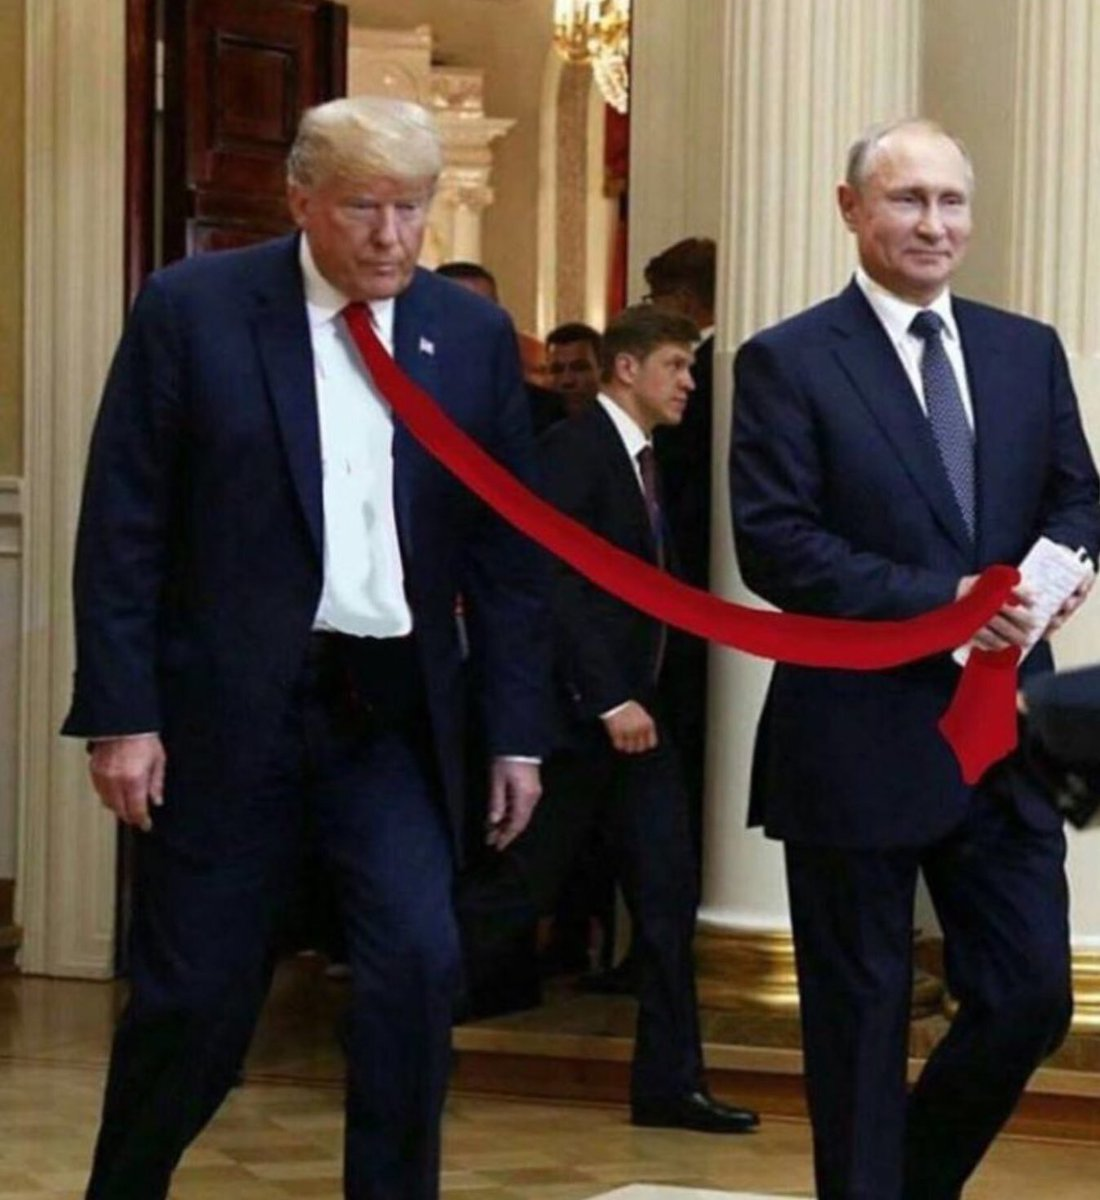 If happy ever after did exist I would still be holding you just like this. #Maroon5 #convictanddisqualifytrump #Russia #Putin